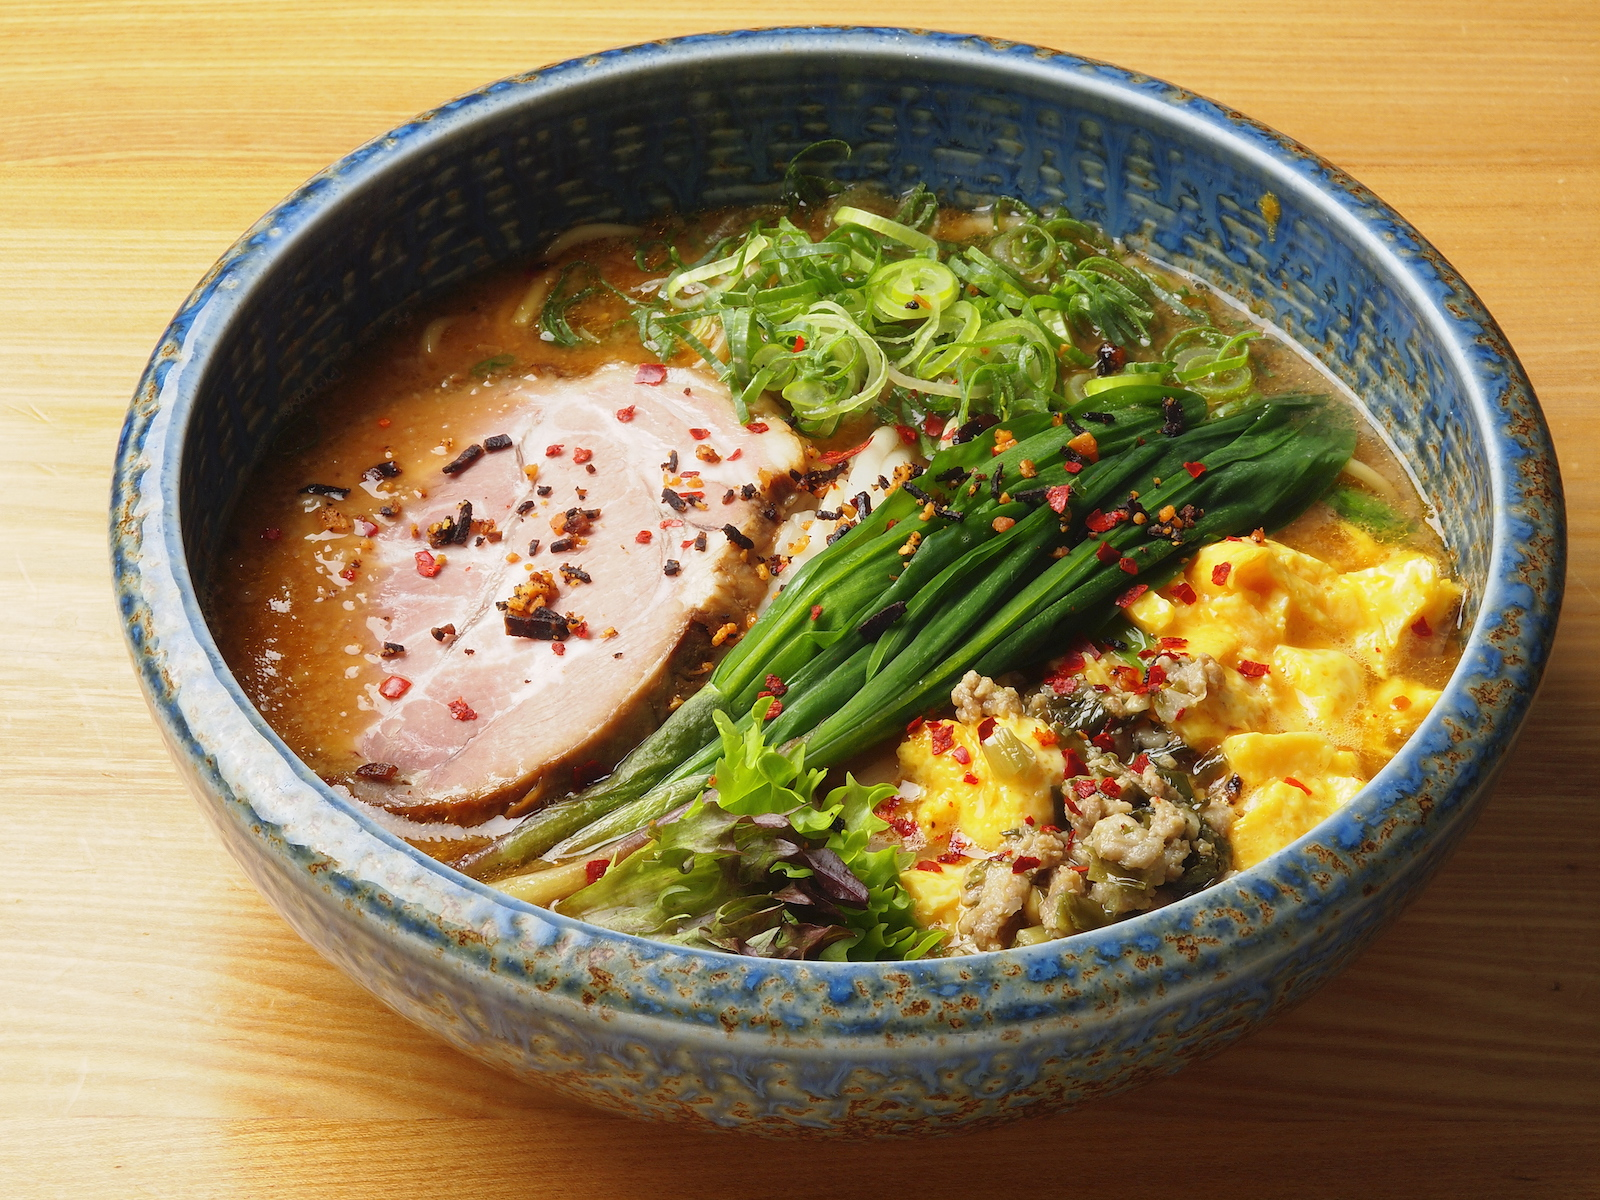 """The prominently featured alpine leek goes great with the slightly salted scrambled egg in the """"bowl that lift your spirits"""" at Ramen Sapporo Ichiryuan."""